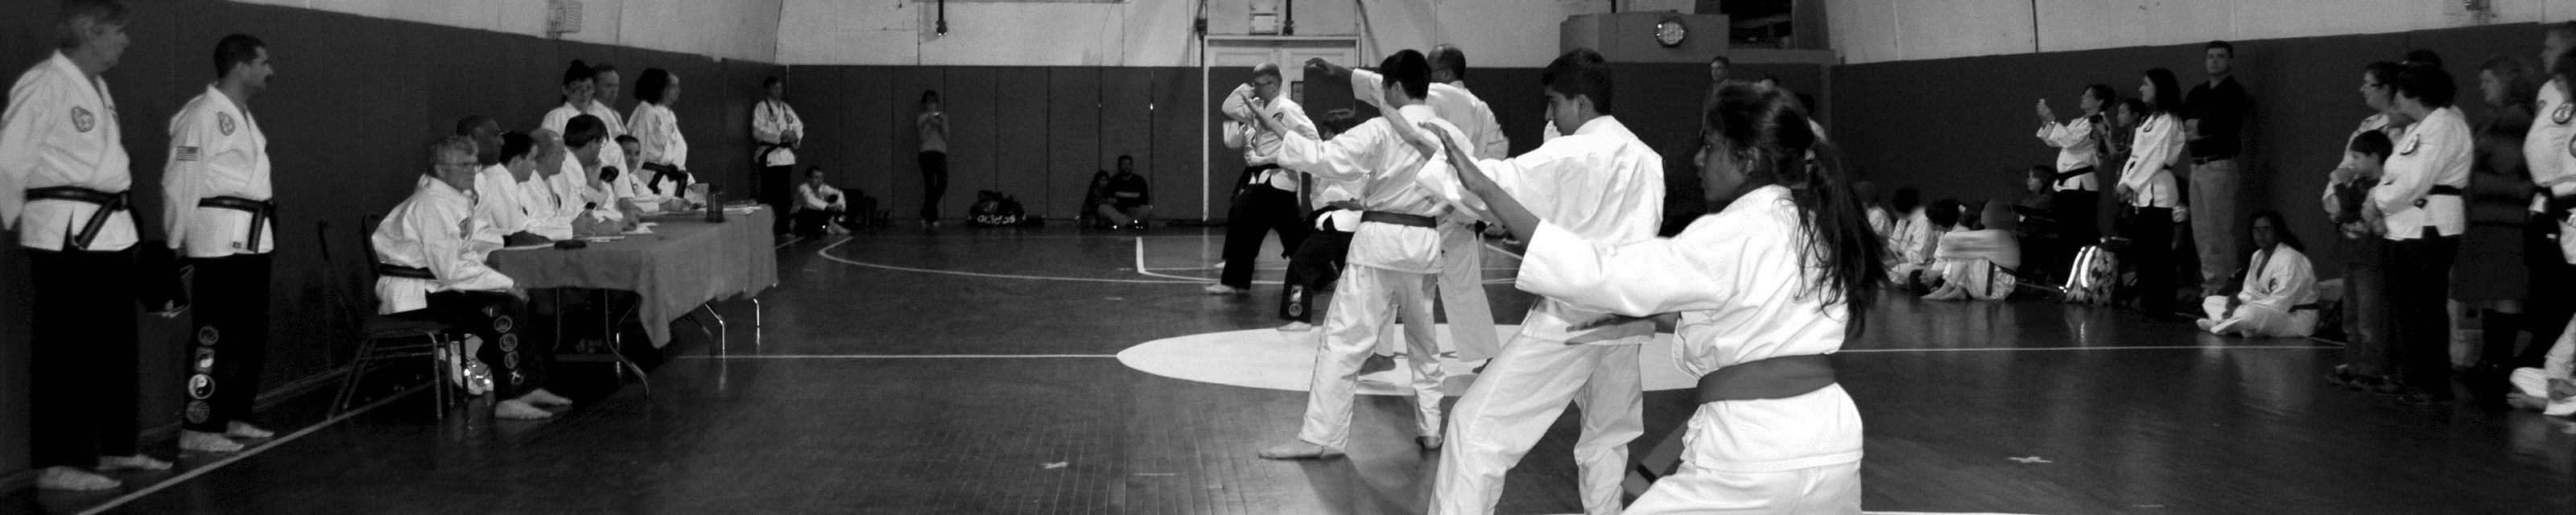 Tae Kwon Do Karate Club